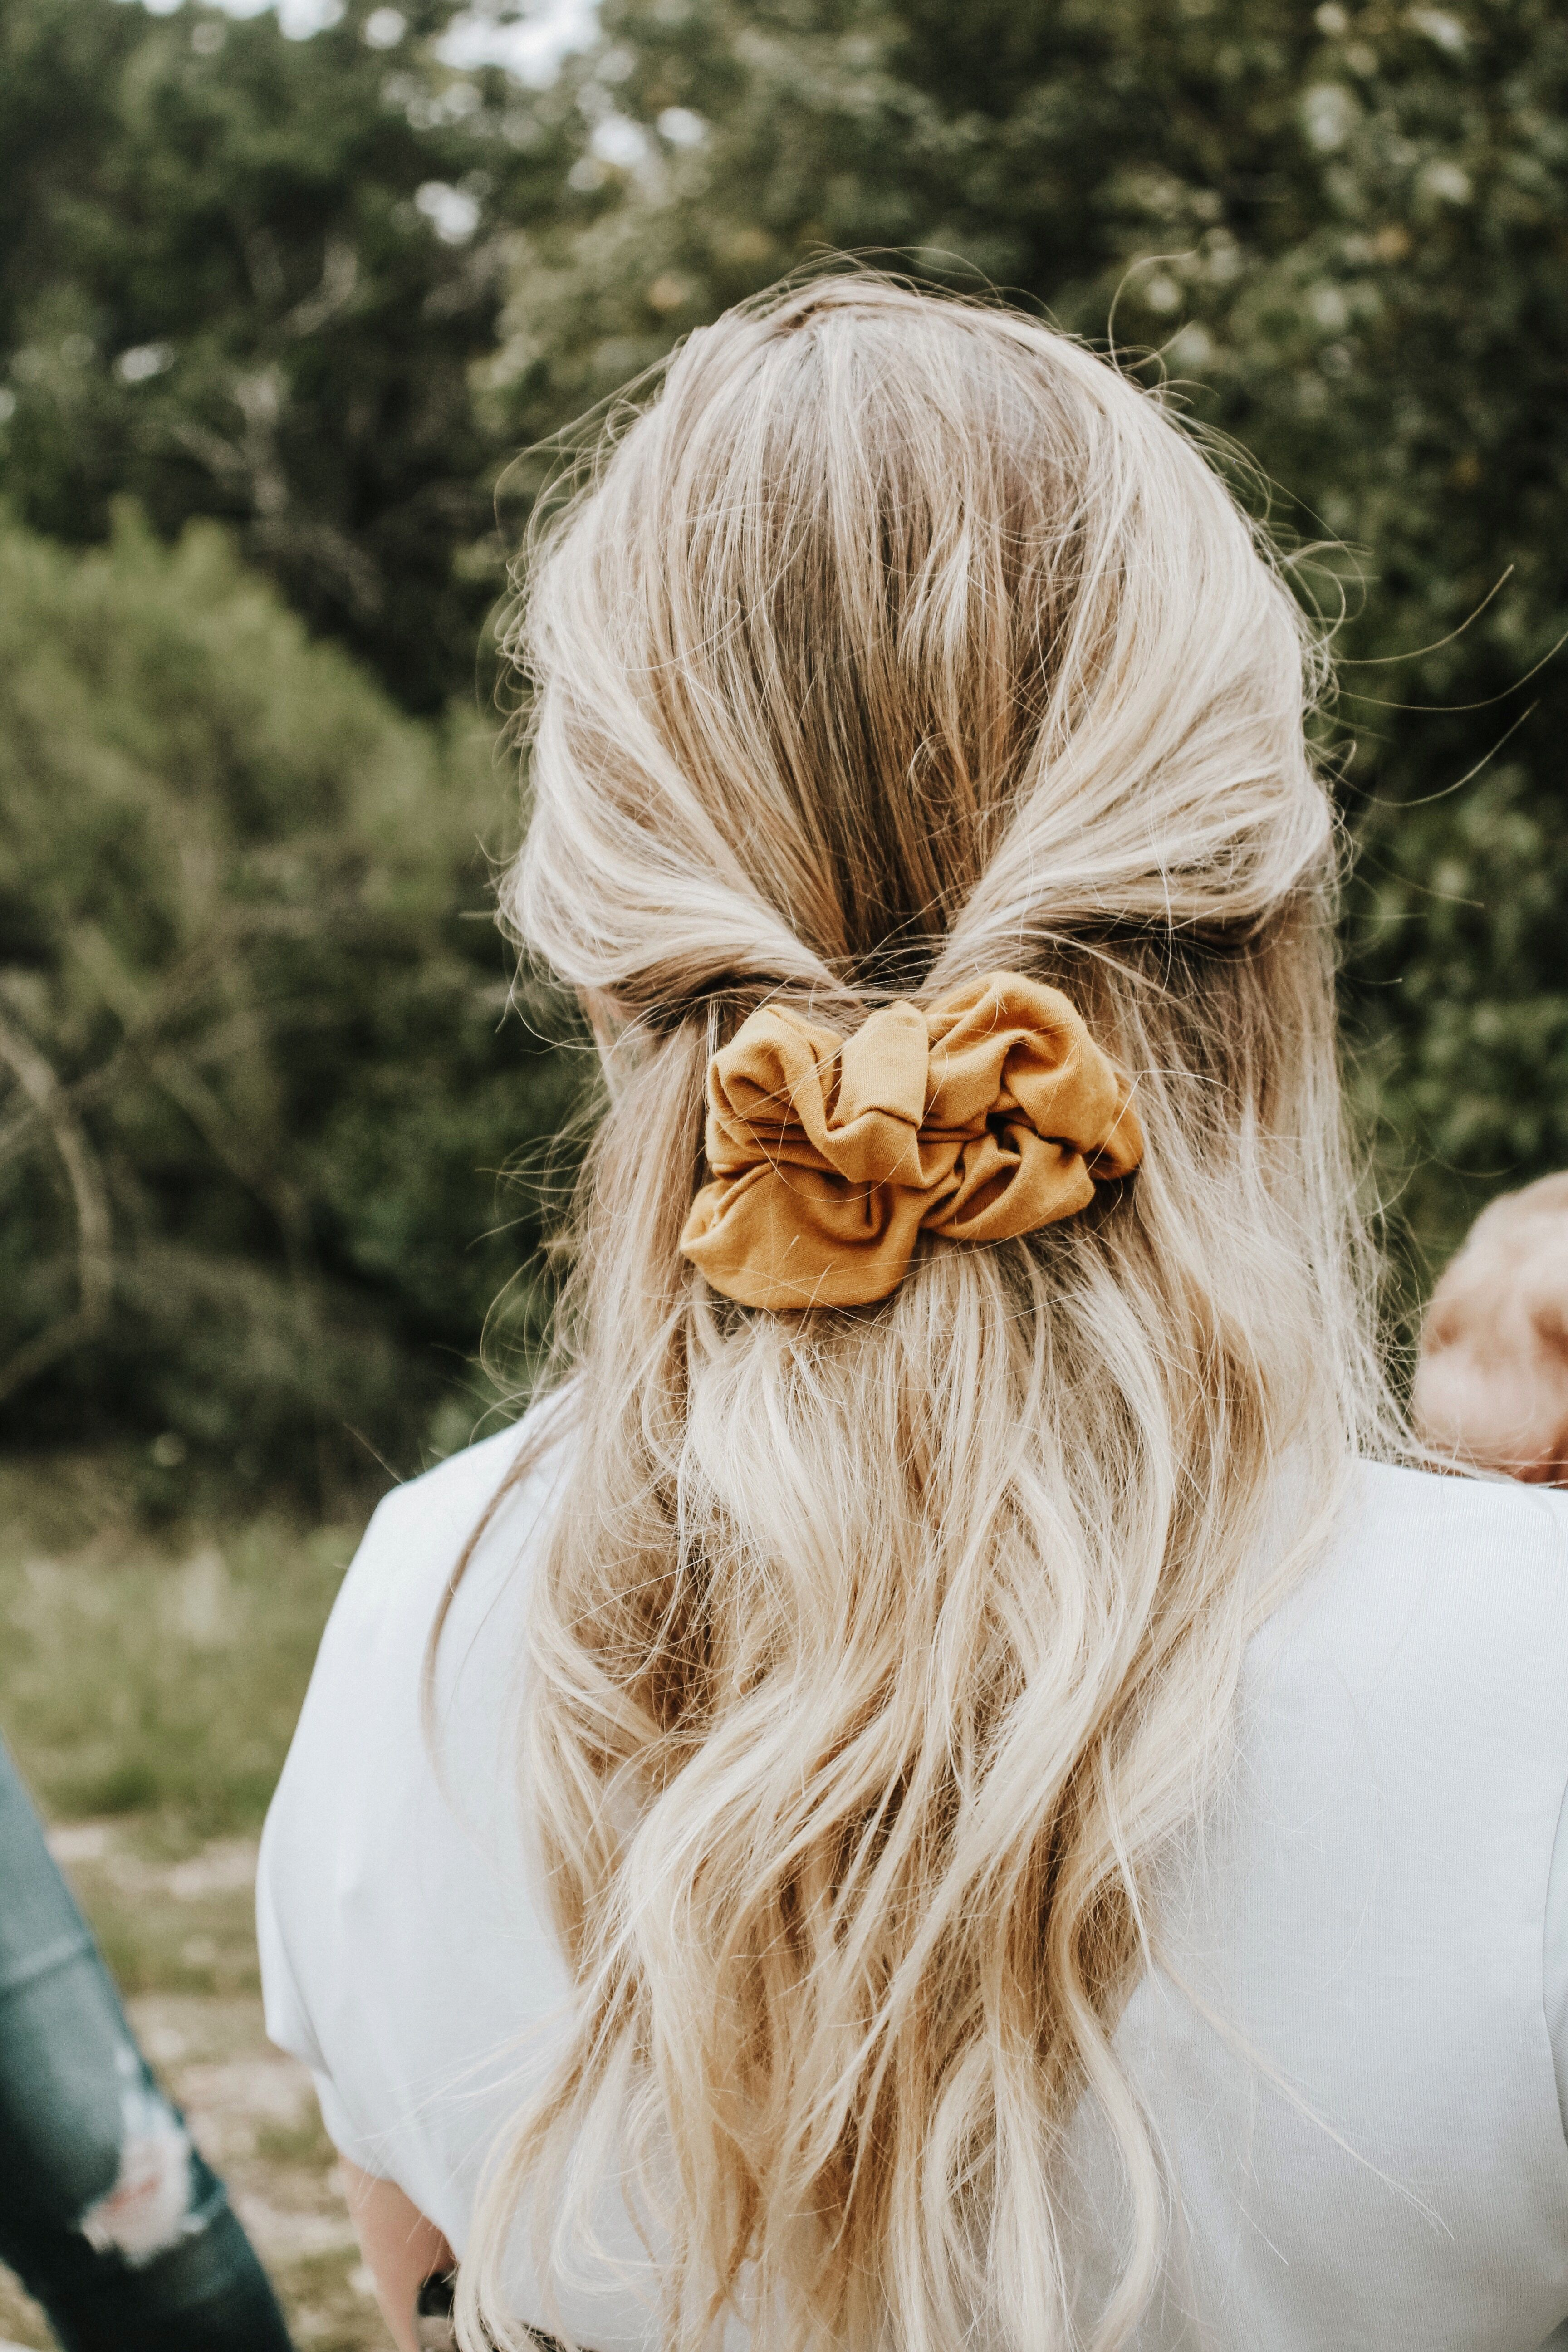 15 Scrunchie Hairstyles – How To Wear a Scrunchie